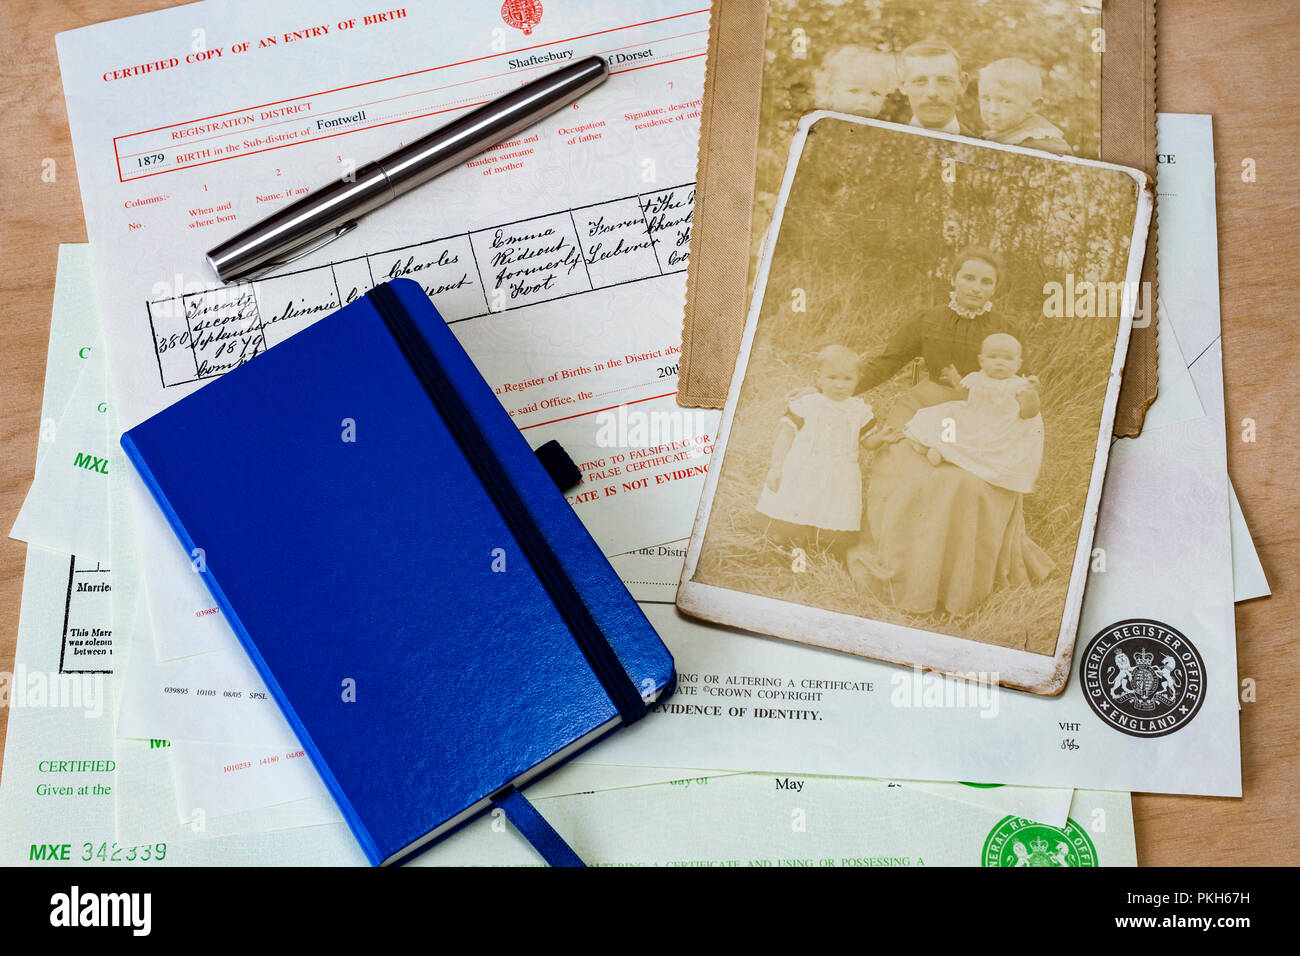 Collection of birth, marriage, death certificates & a notebook with some old photographs used for family history research, England, UK Stock Photo